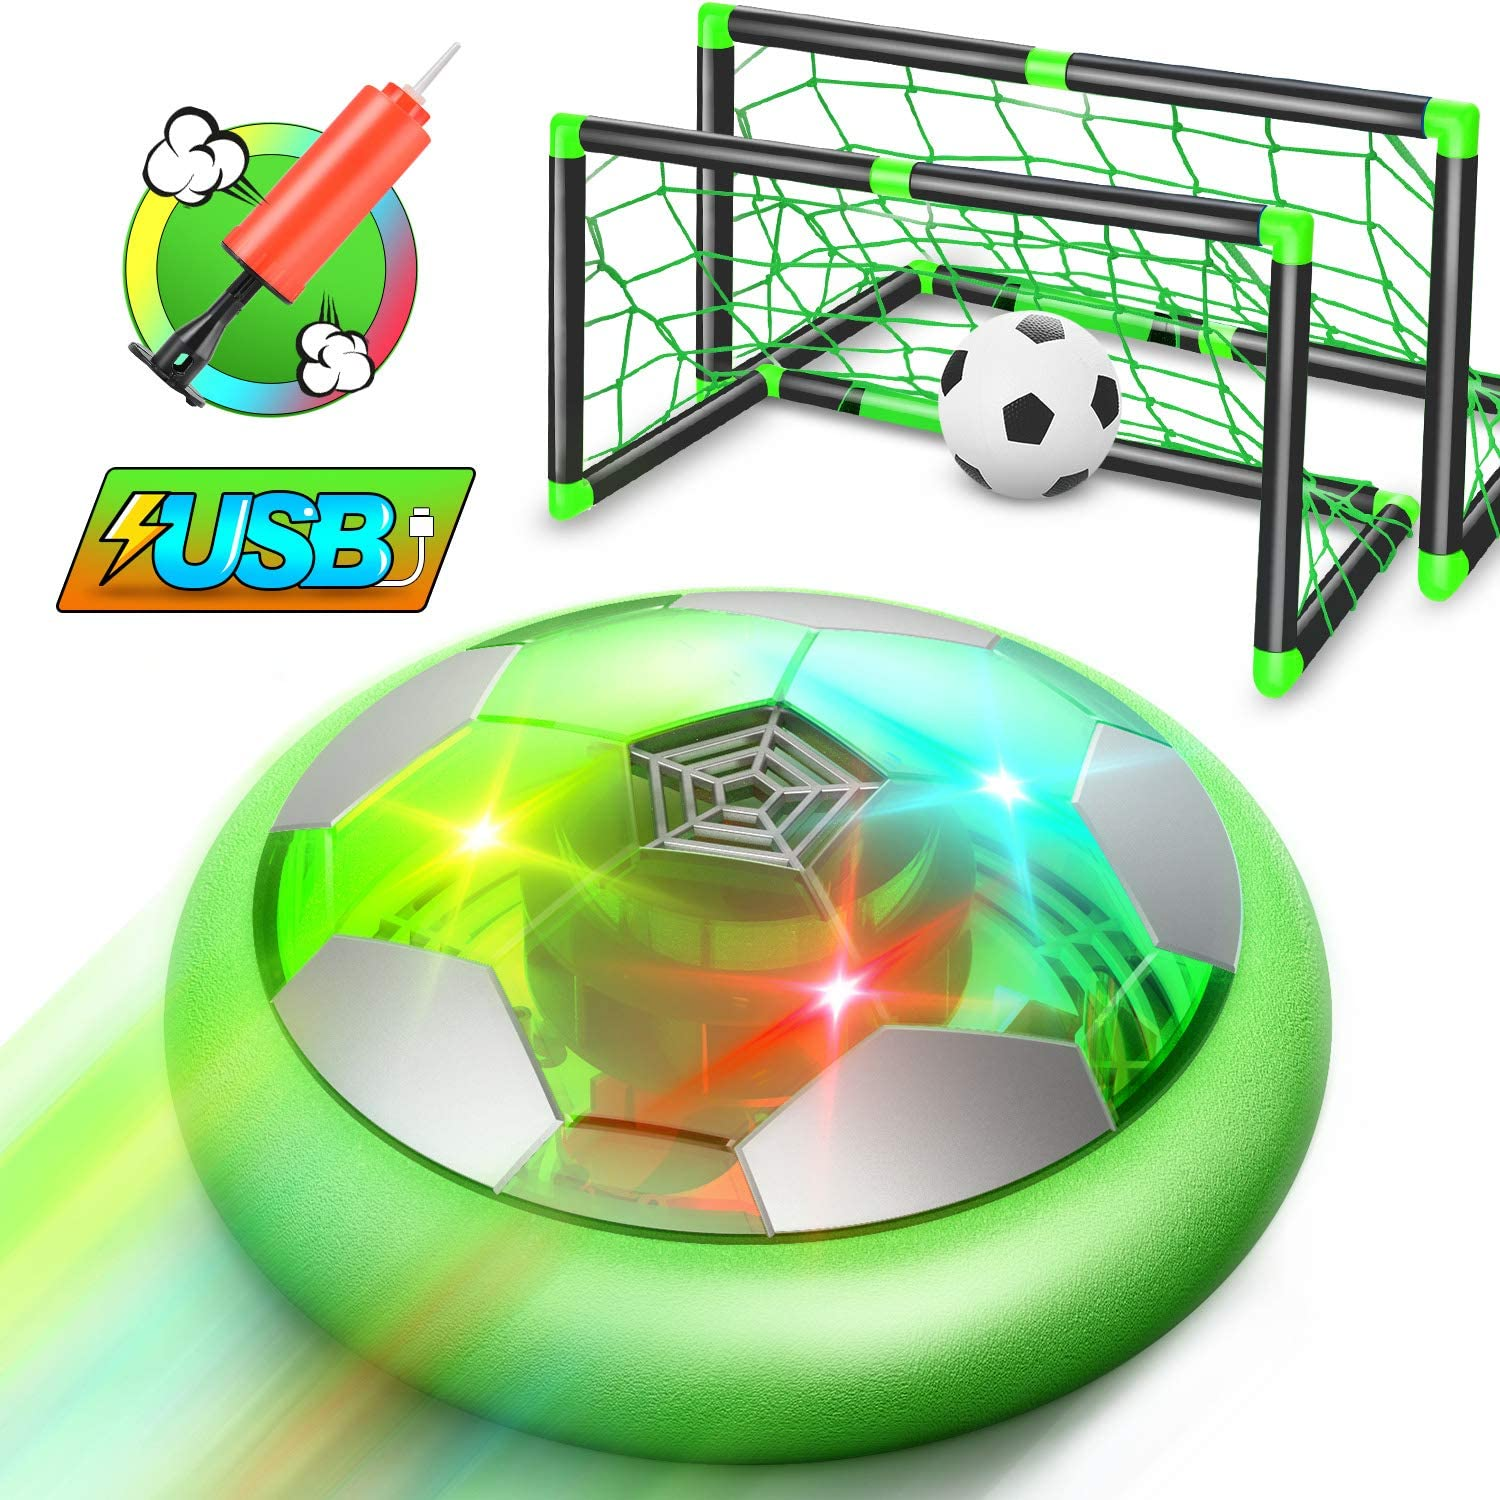 WisToyz Hover Soccer Ball Set Rechargeable Hover Soccer Set with Goals & Nets, Indoor Hover Soccer & Rubber Soccer Ball Included, Soccer Net Hover Soccer Set for Backyard, Toys for Boys Girls Kids